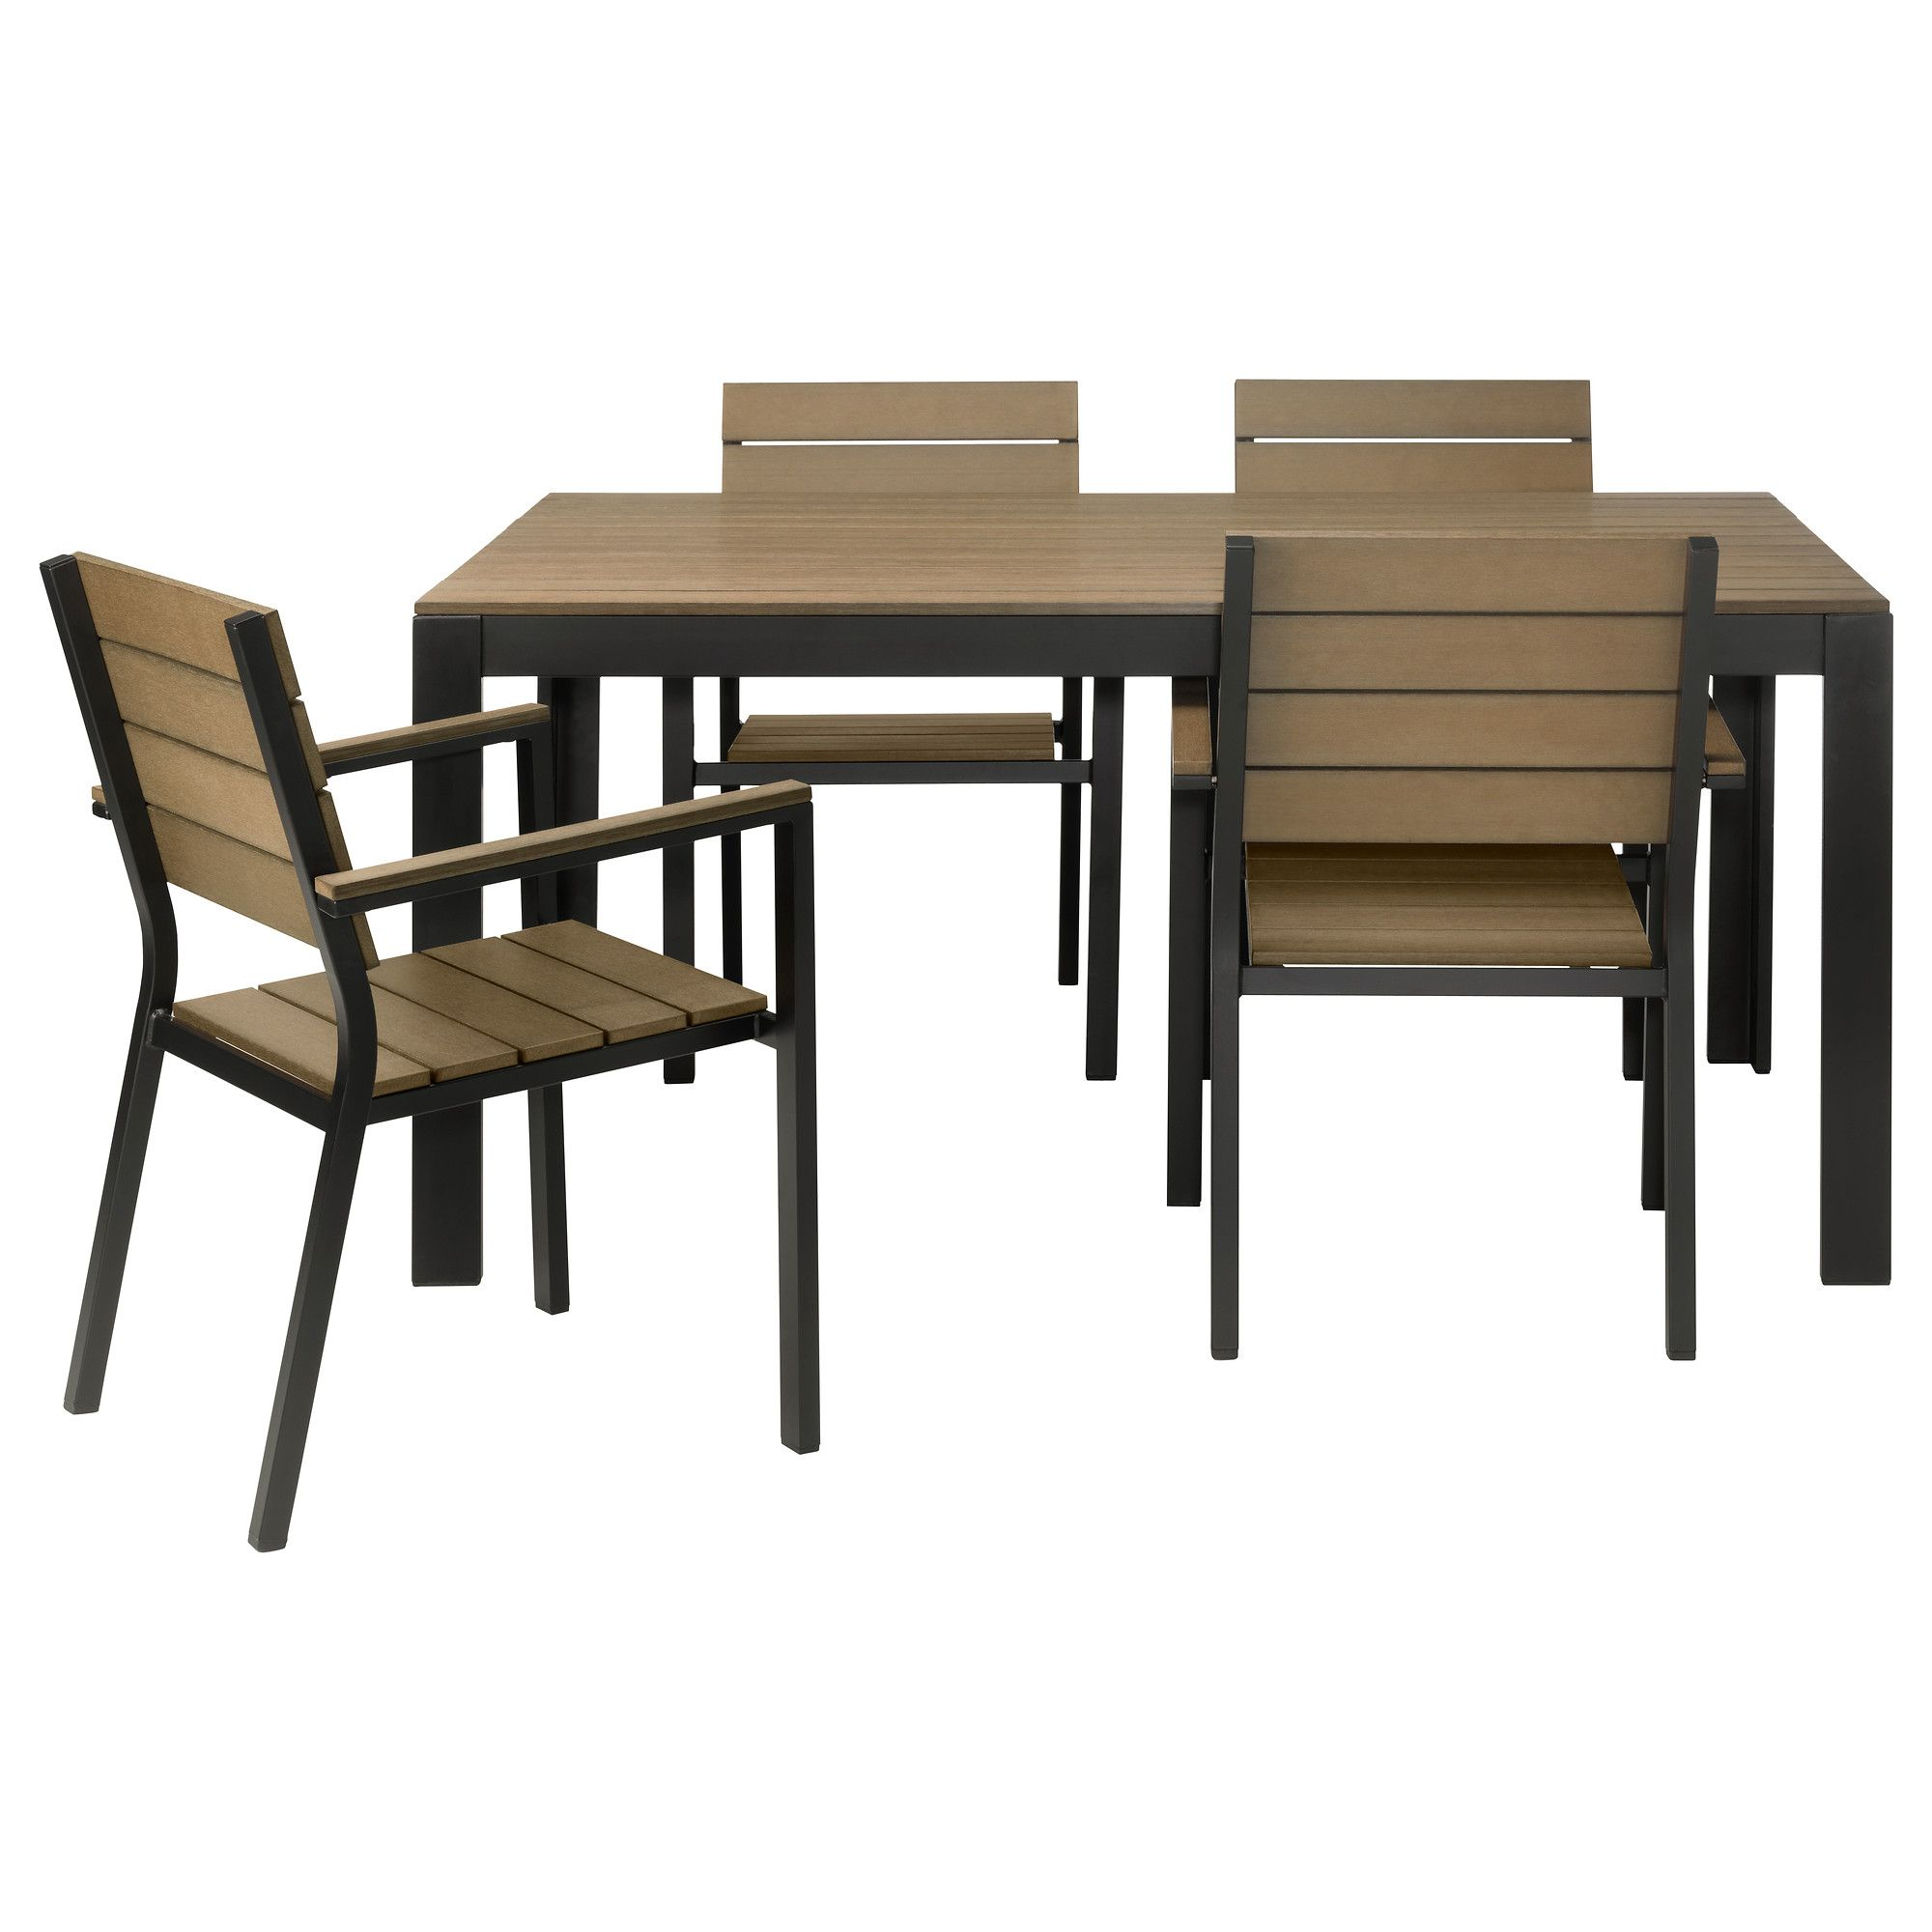 IKEA US - Furniture and Home Furnishings  Ikea outdoor, Outdoor